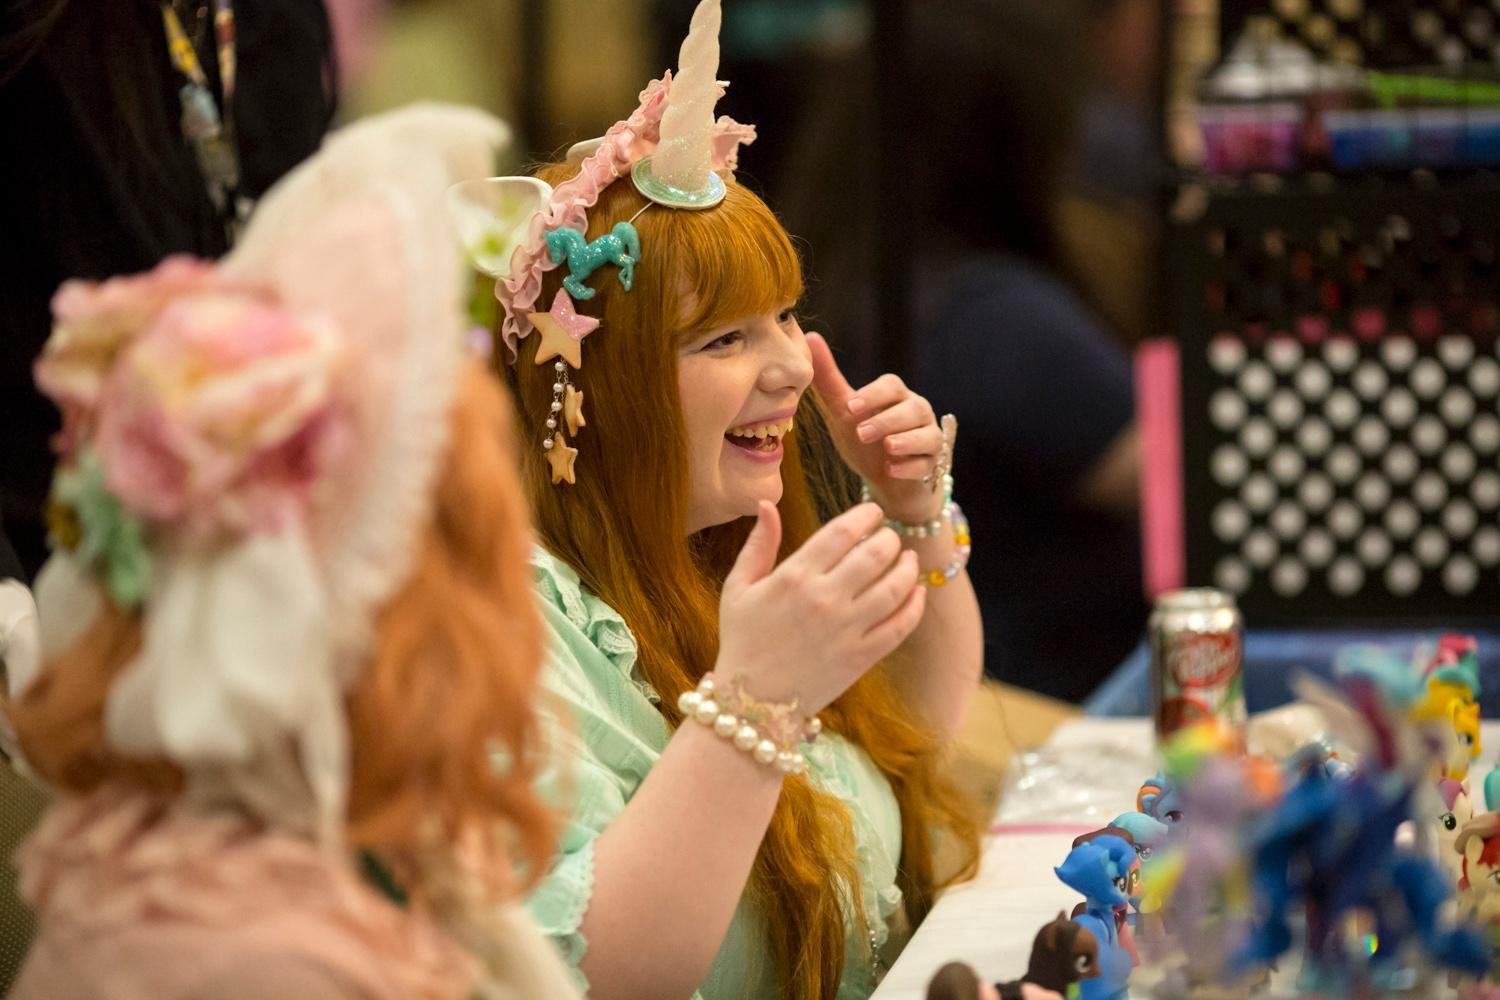 Fans crazy about the cartoon show My Little Pony flood the DoubleTree Hotel in SeaTac for Everfree Northwest, a three-day convention featuring everything to do with the popular TV show. Over 3,000 attendees are expected to attend the event, which is now in its 7th year. (Sy Bean / Seattle Refined)